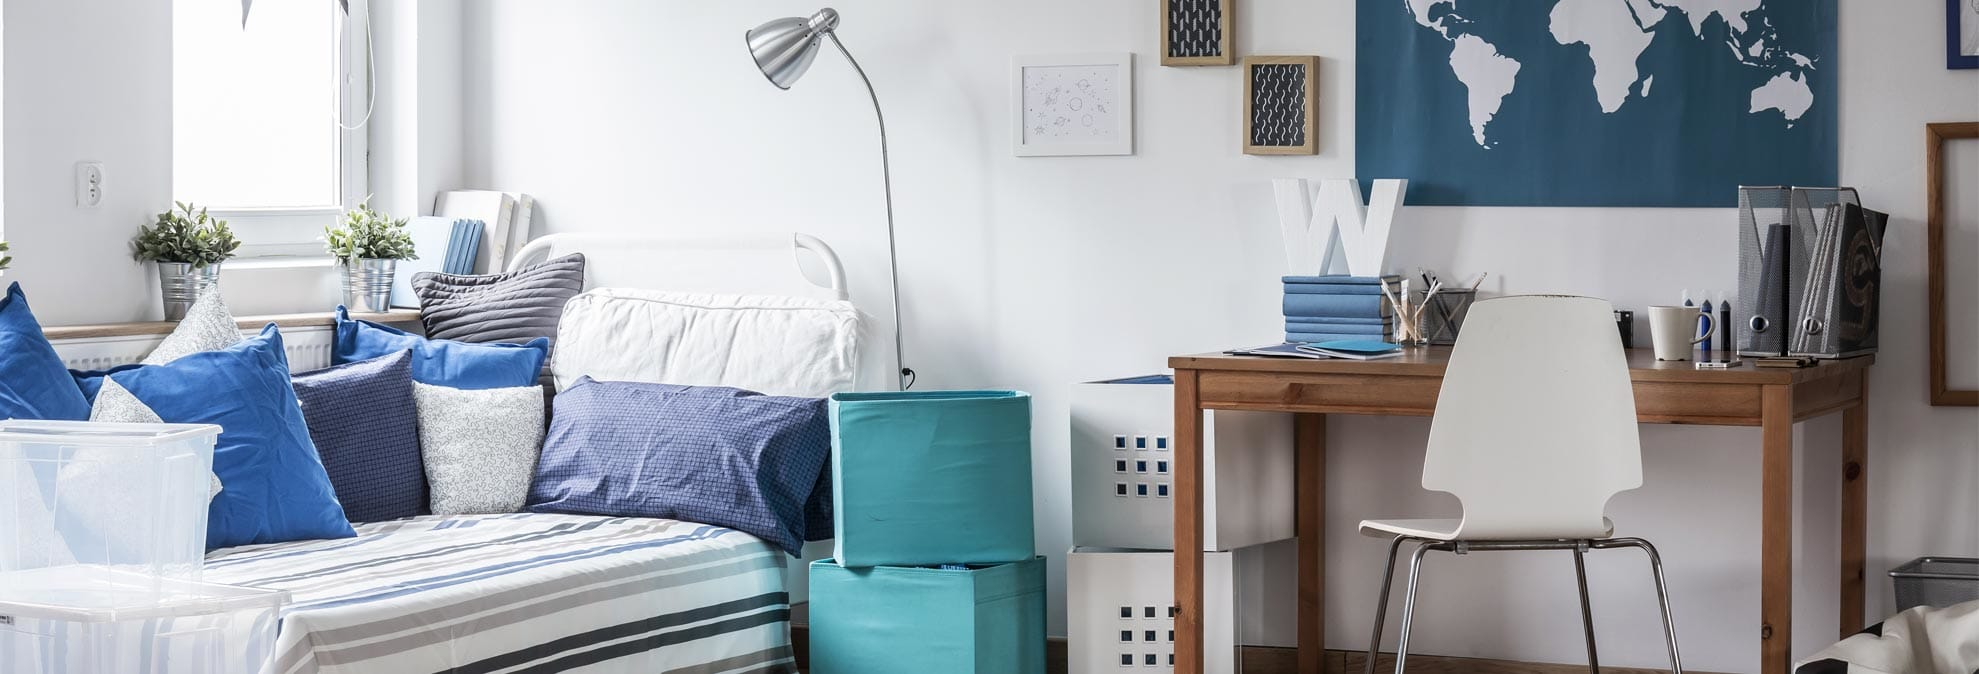 best foam mattresses for 600 or less consumer reports